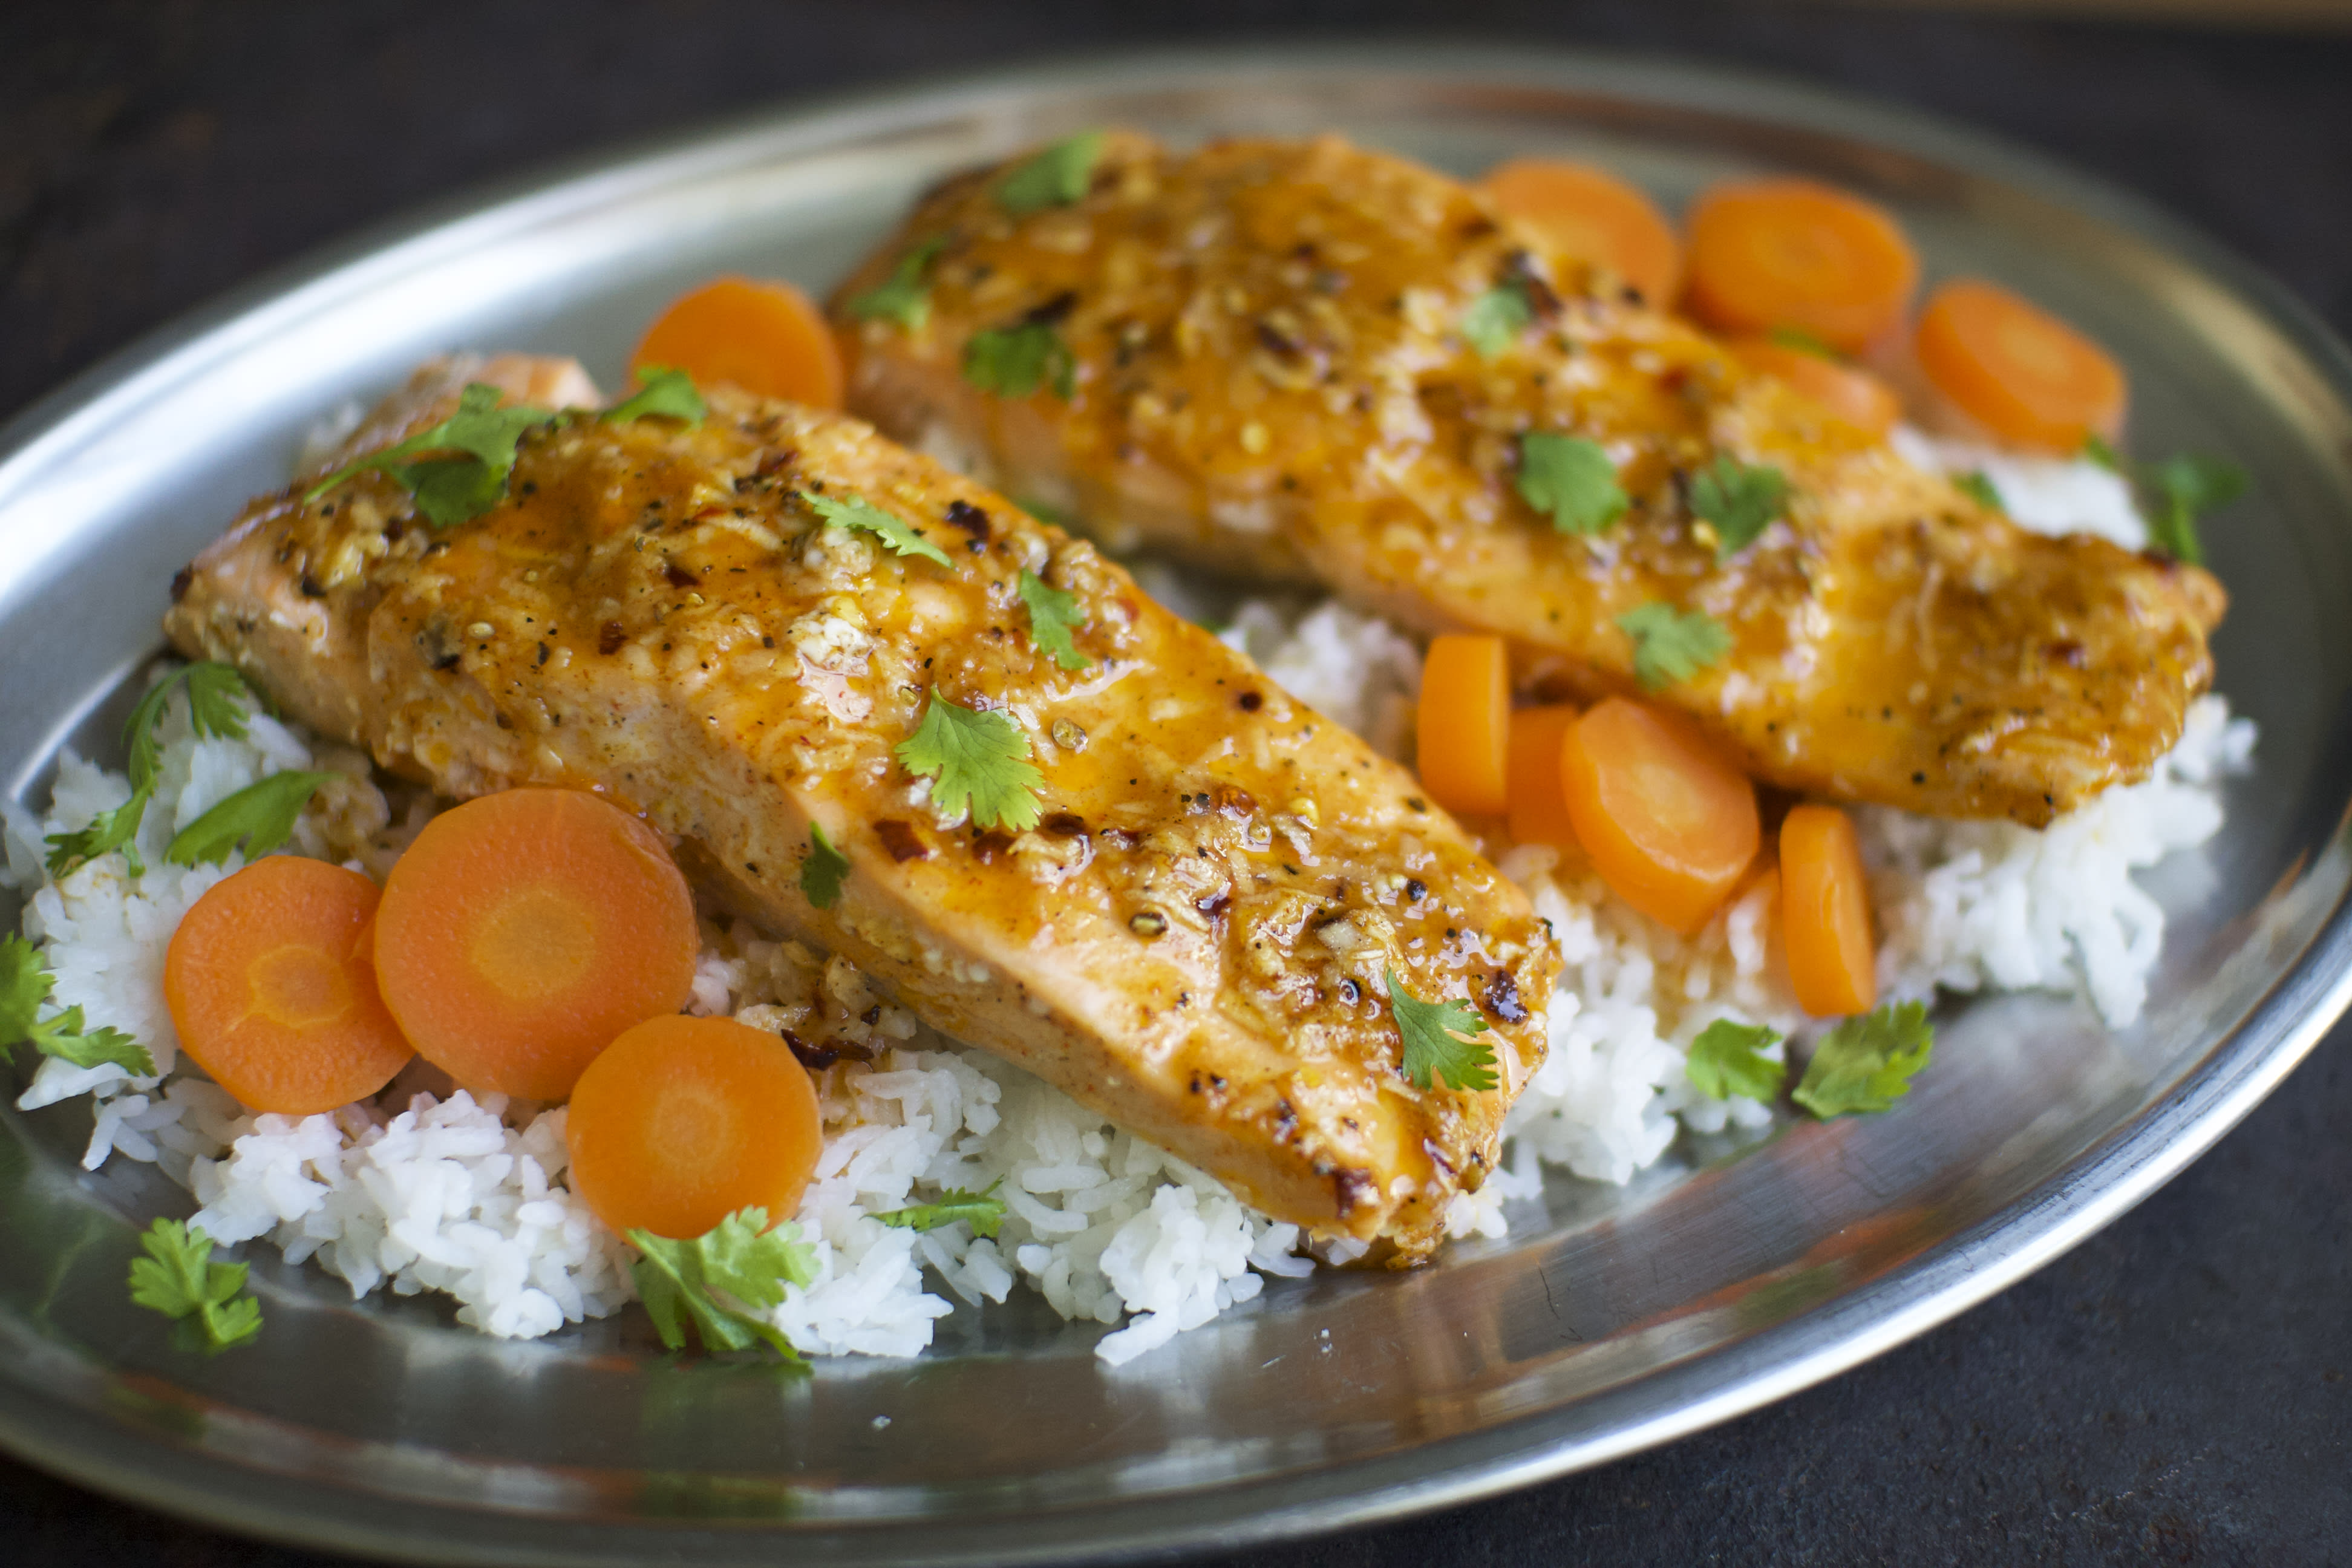 Baked Honey and Garlic Salmon with Carrots and Rice